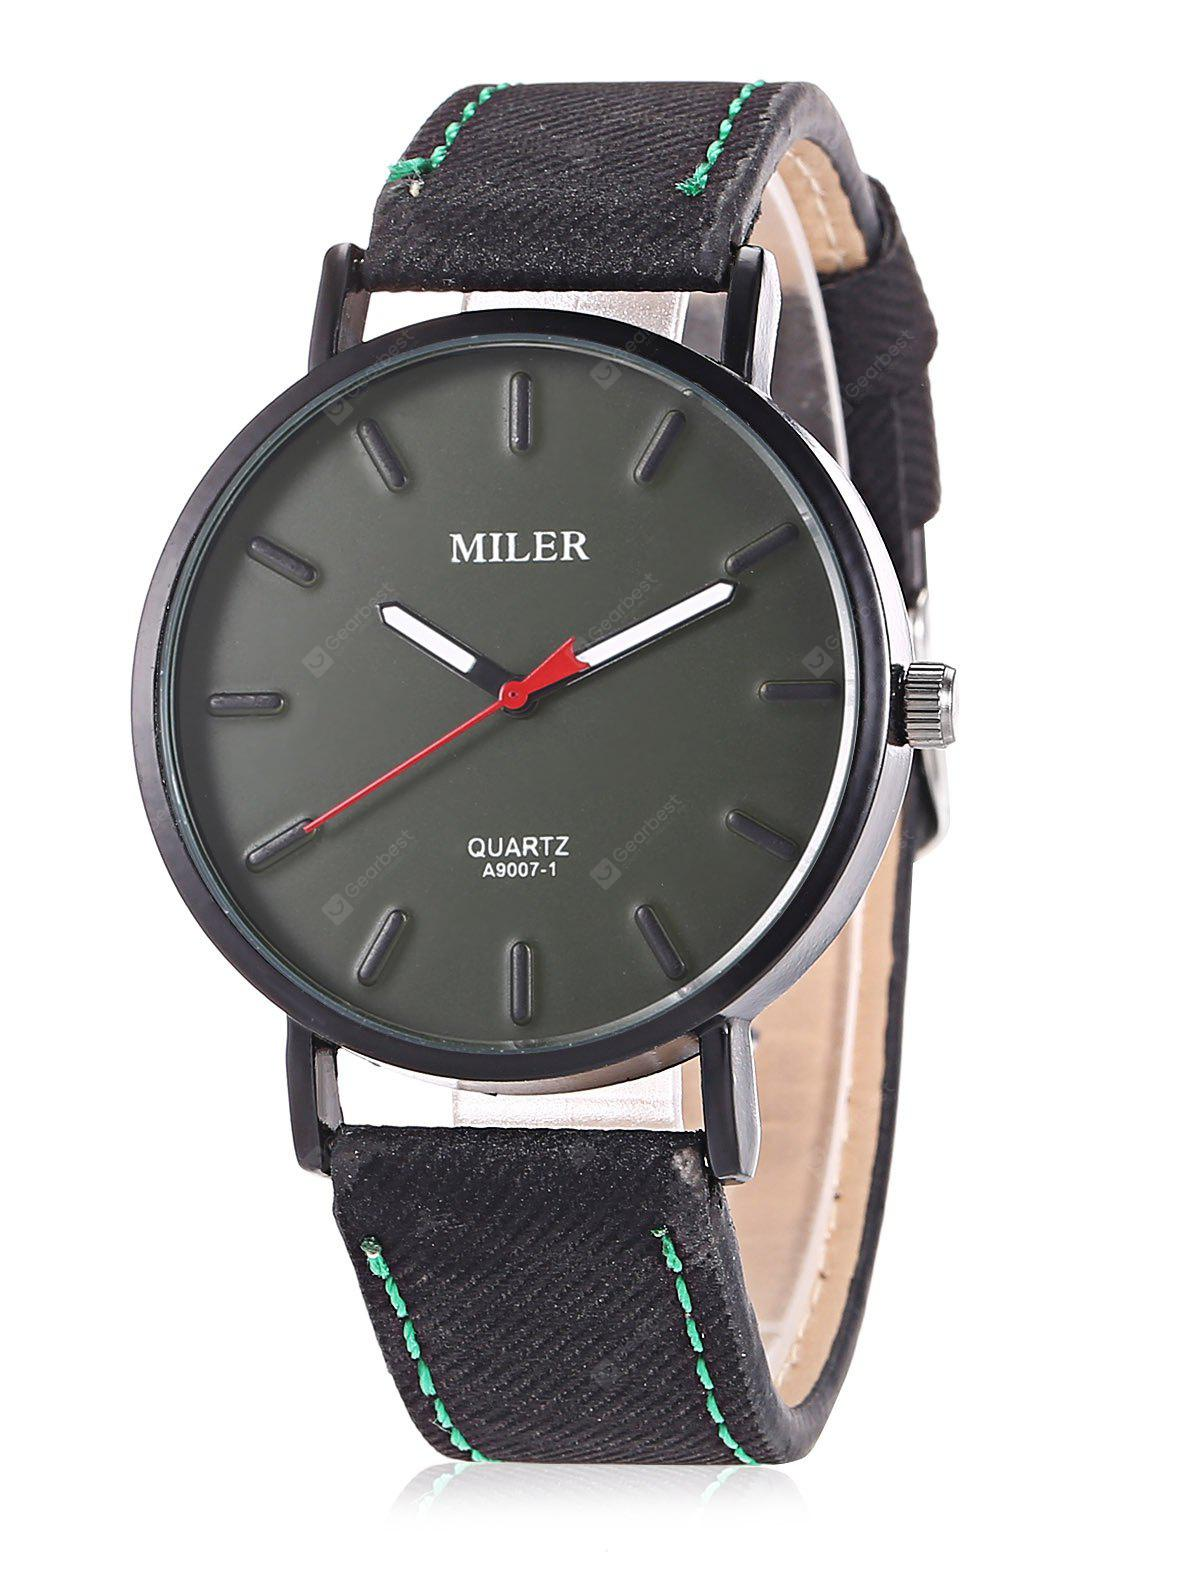 BLACKISH GREEN, Watches & Jewelry, Women's Watches